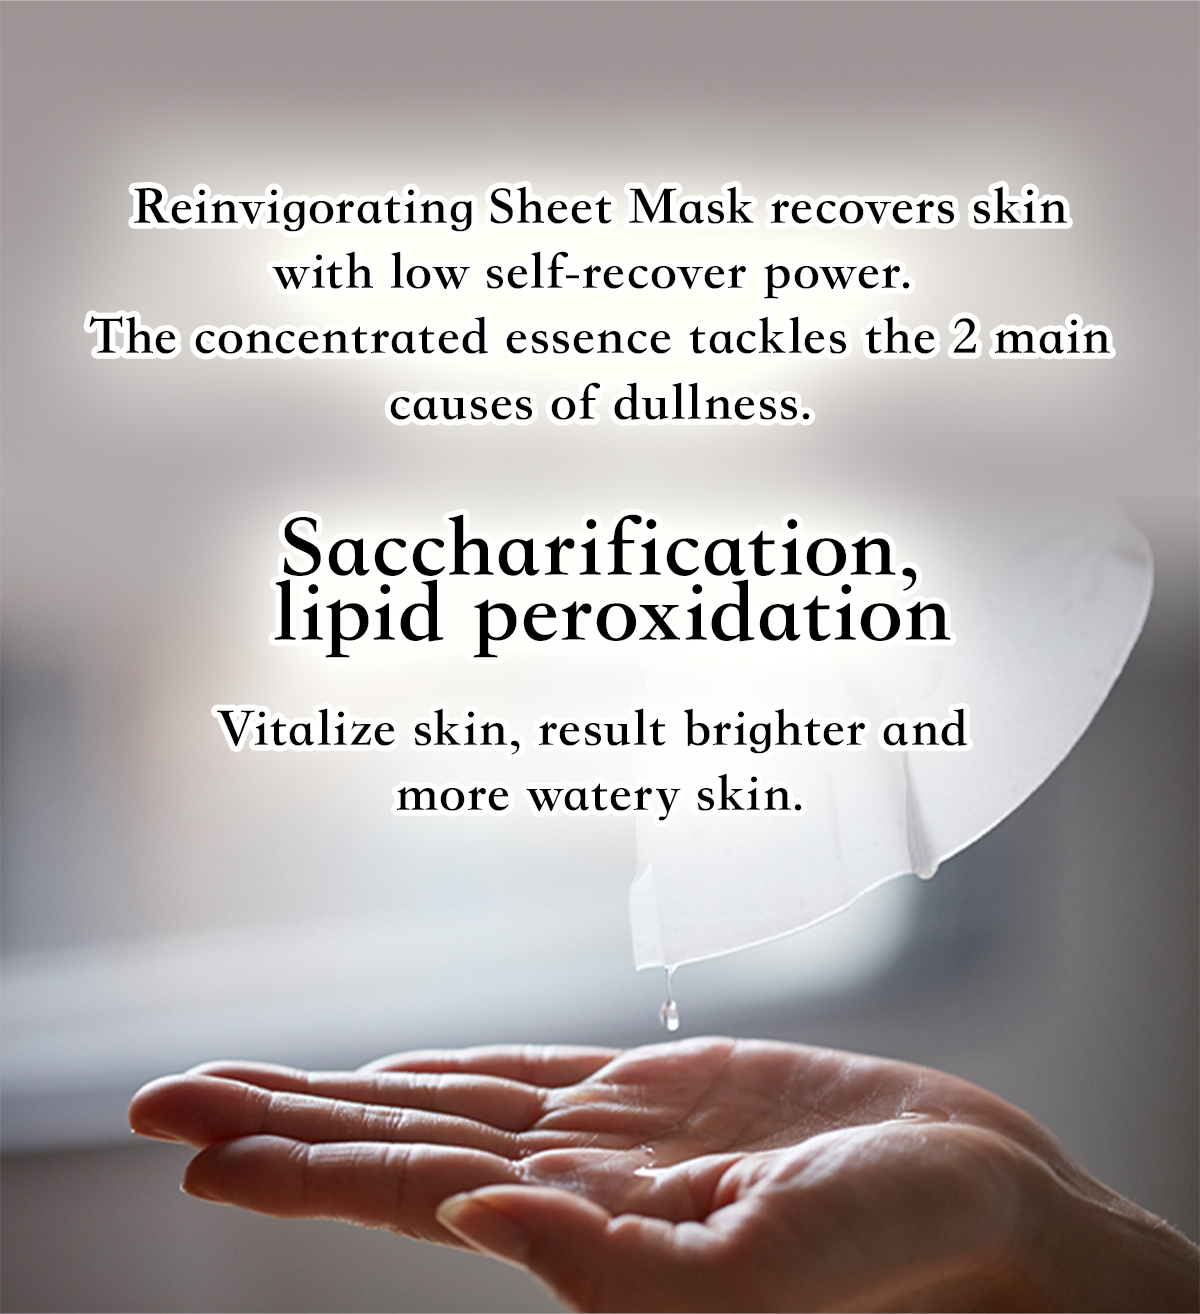 Reinvigorating Sheet Mask recovers skin with low self-recover power. The concentrated essence tackles the 2 main causes of dullness. Saccharification, lipid peroxidation Vitalize skin, result brighter and more watery skin.